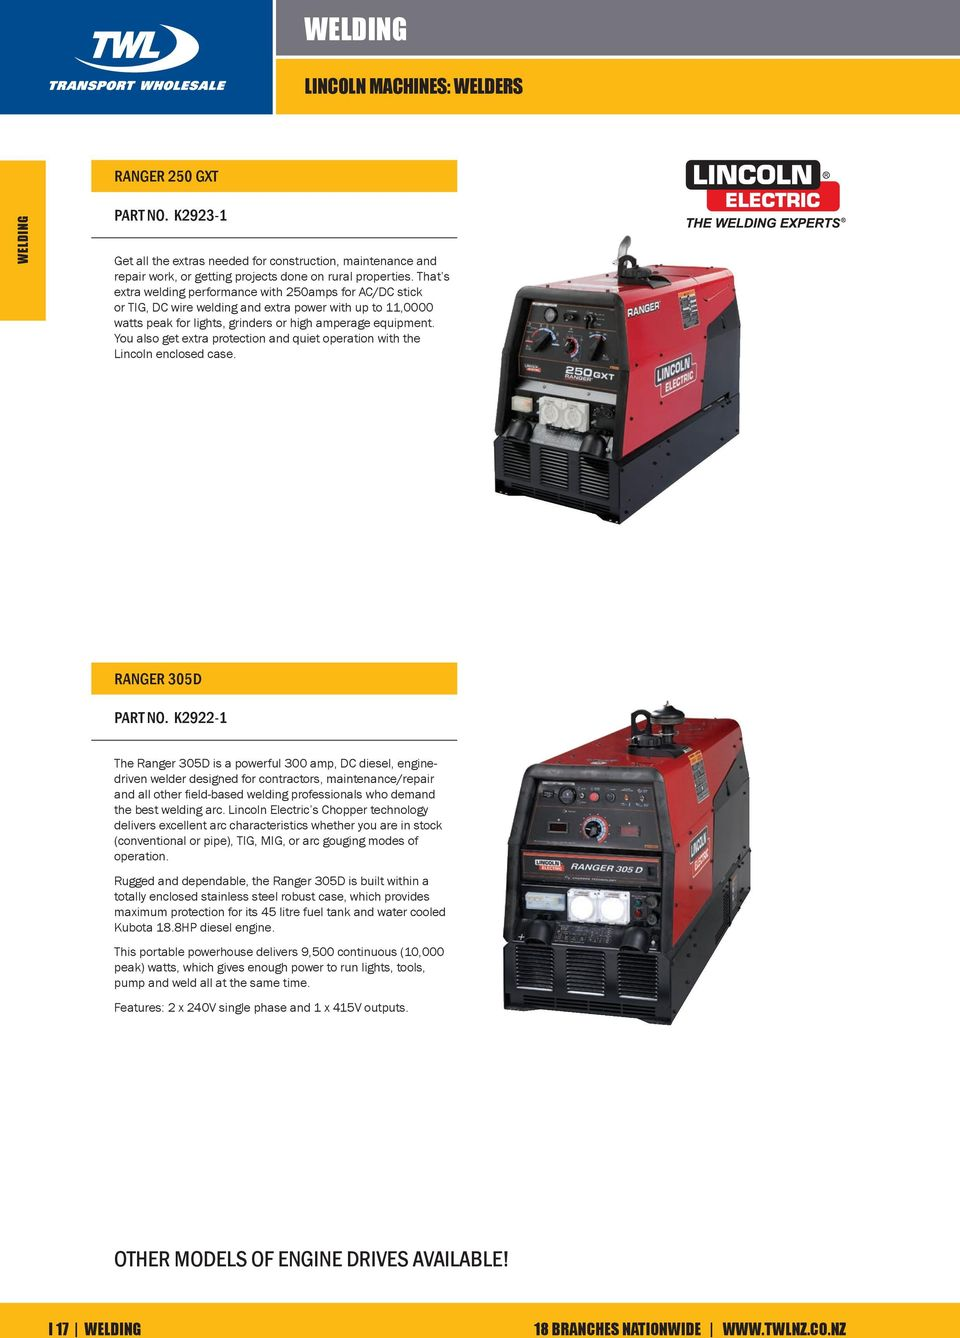 Welding Lincoln Machines Stick Welders Handy 130 Part No K 100sg Wiring Diagram You Also Get Extra Protection And Quiet Operation With The Enclosed Case Ranger 305d